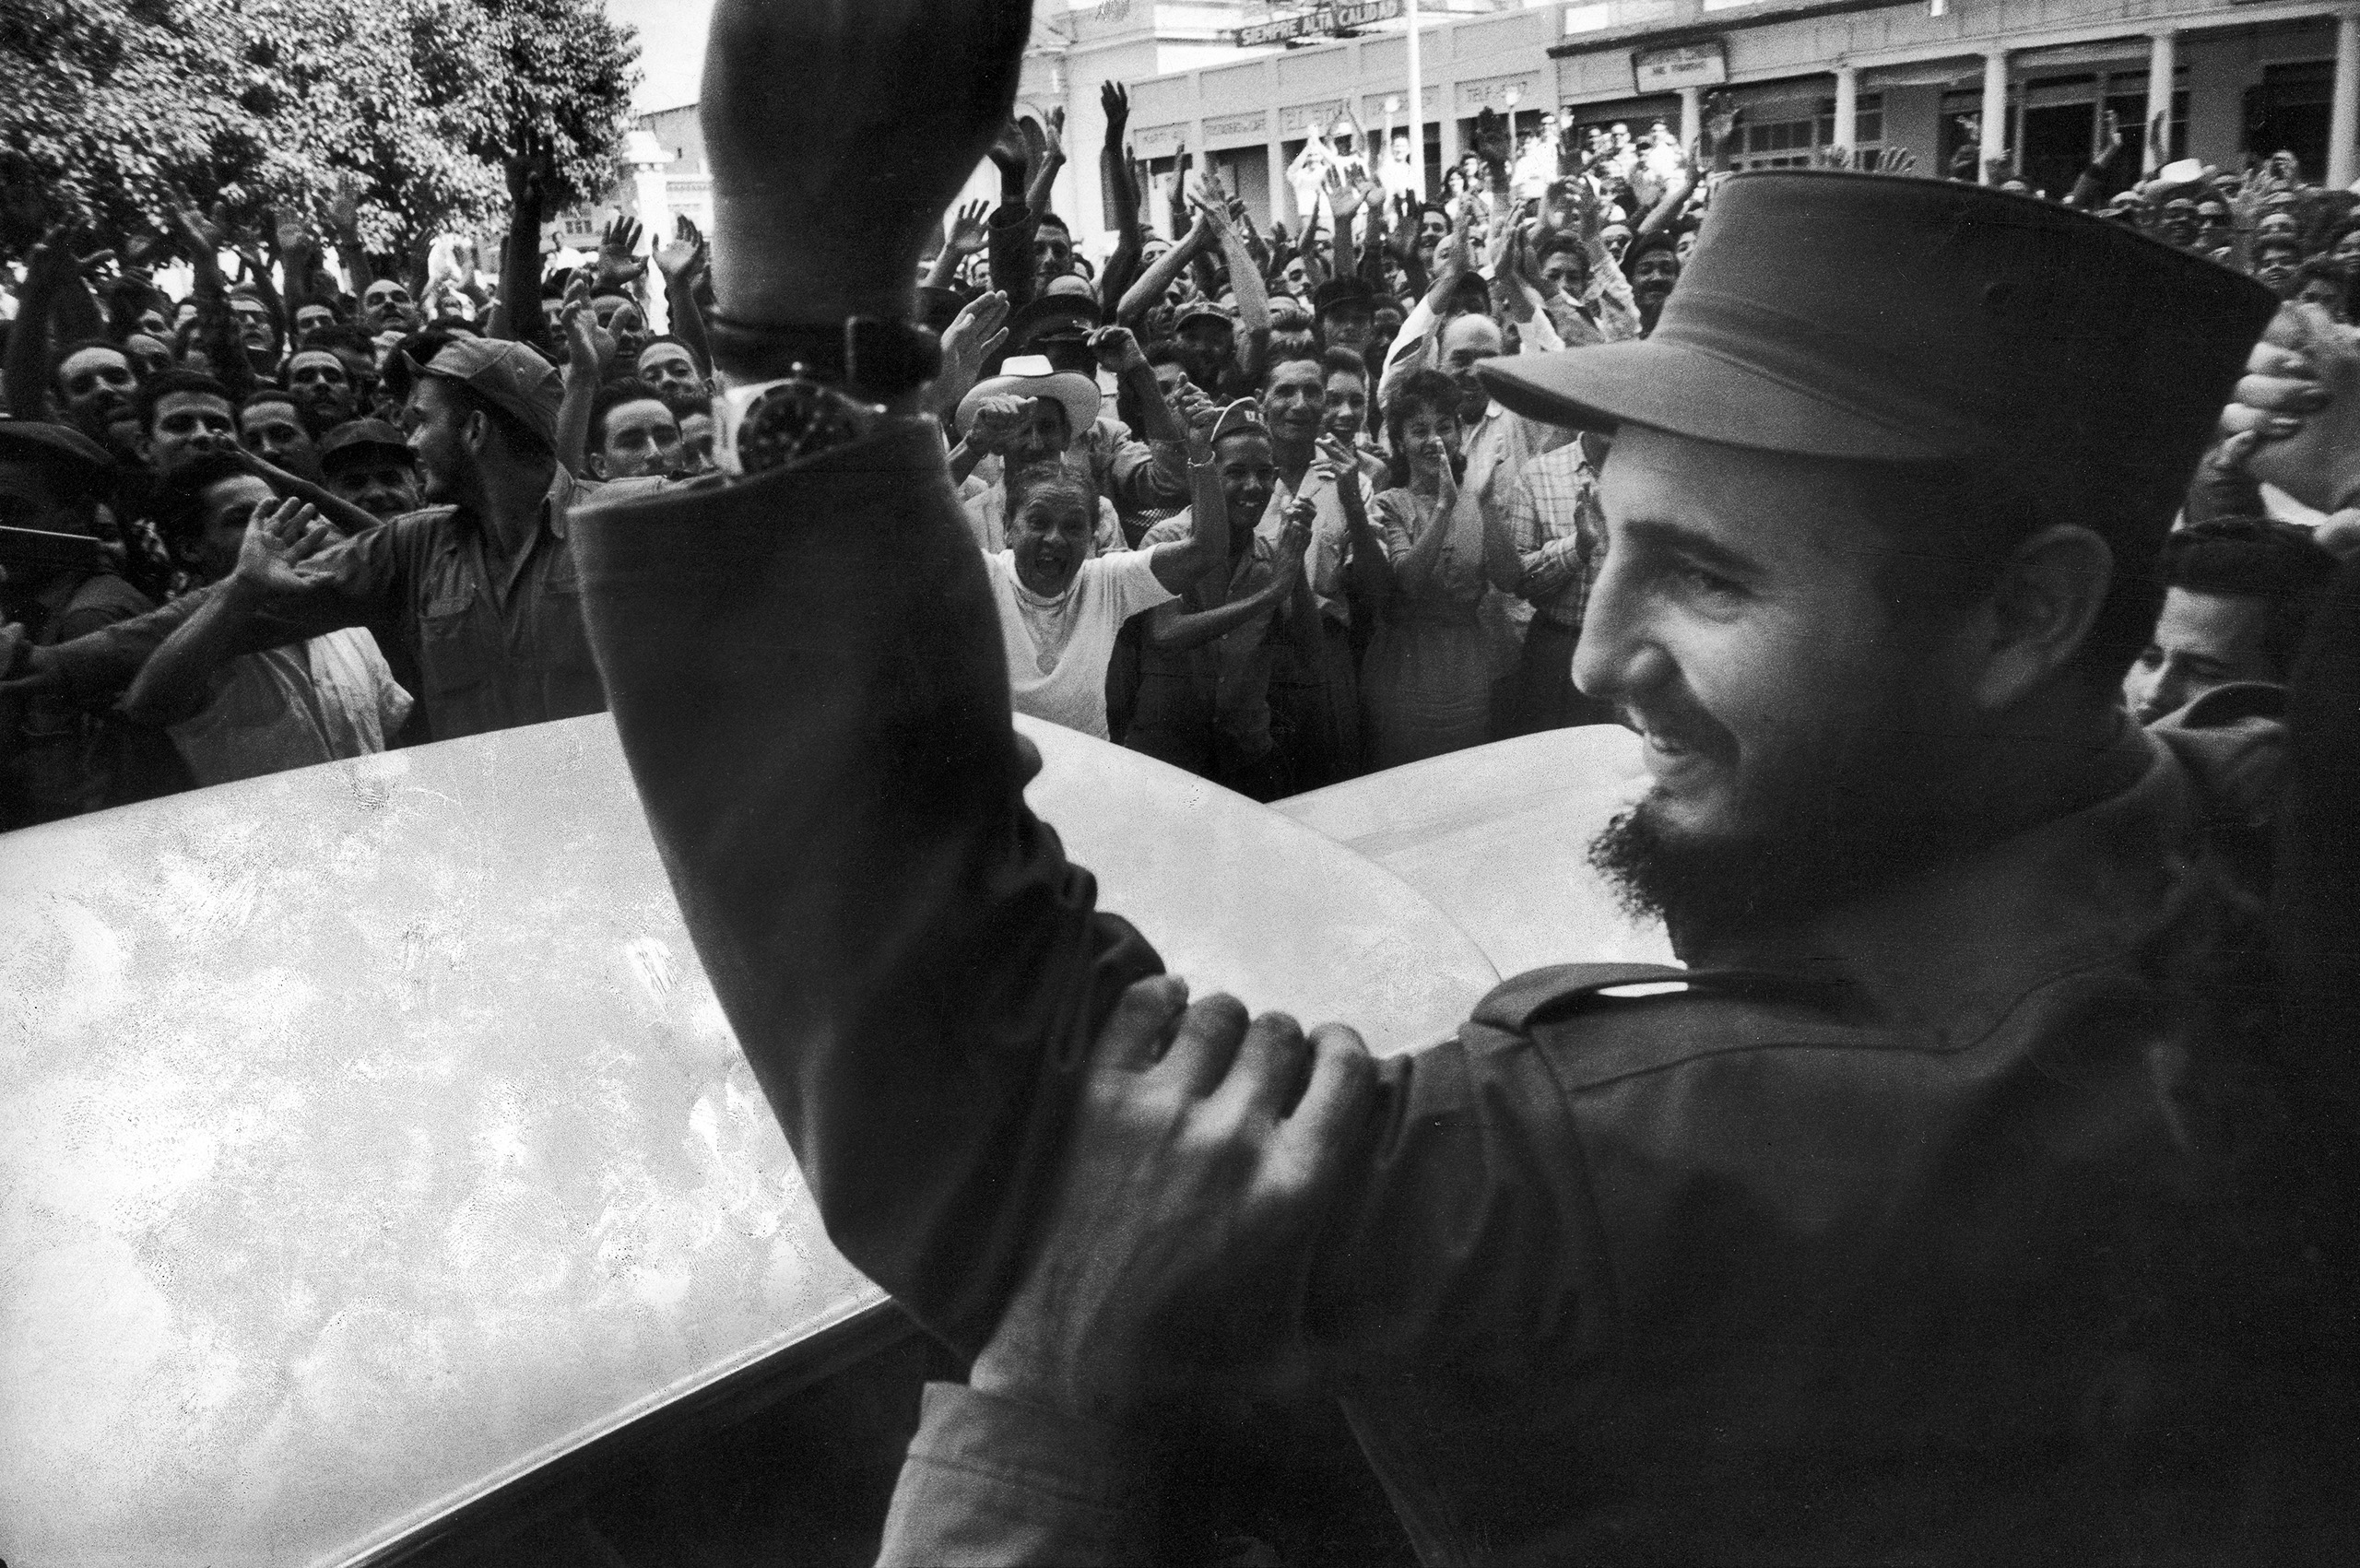 Rebel leader Fidel Castro waves to a cheering crowd on the victorious march to Havana after ousting dictator Fulgencio Batista.